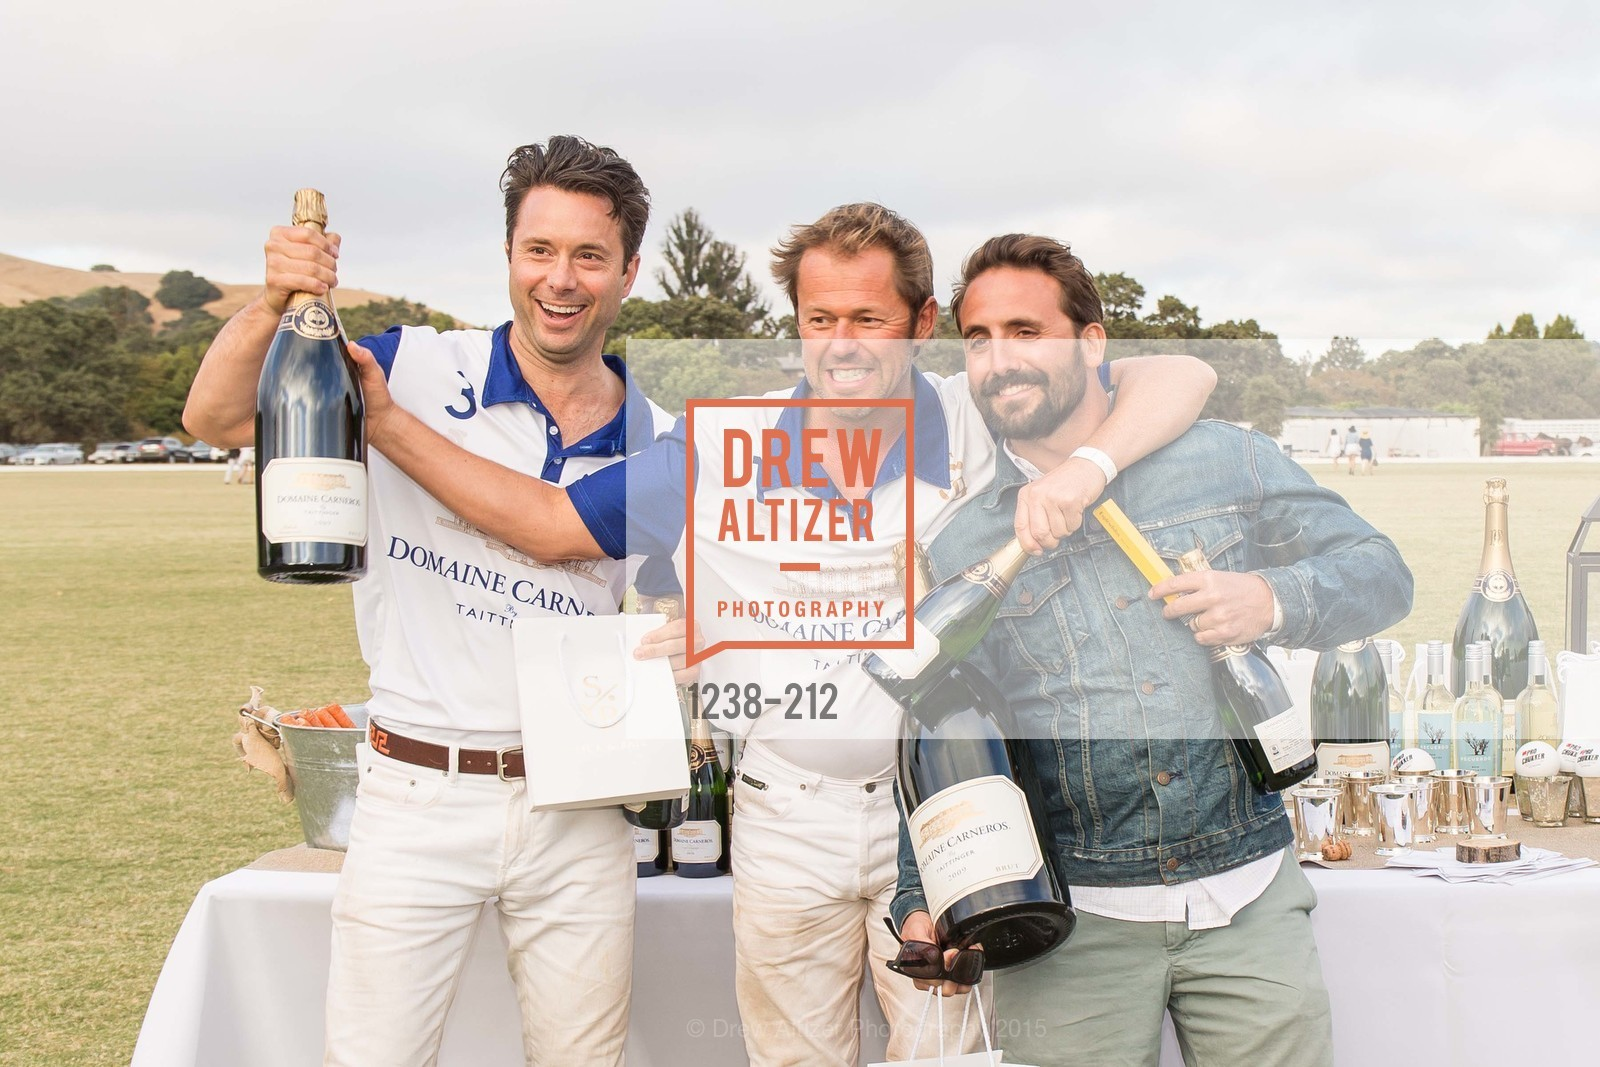 Noah Lewis, Karl Hasz, Stick & Ball Oyster Cup Polo Tournament, Cerro Pampa Polo Club, July 25th, 2015,Drew Altizer, Drew Altizer Photography, full-service agency, private events, San Francisco photographer, photographer california